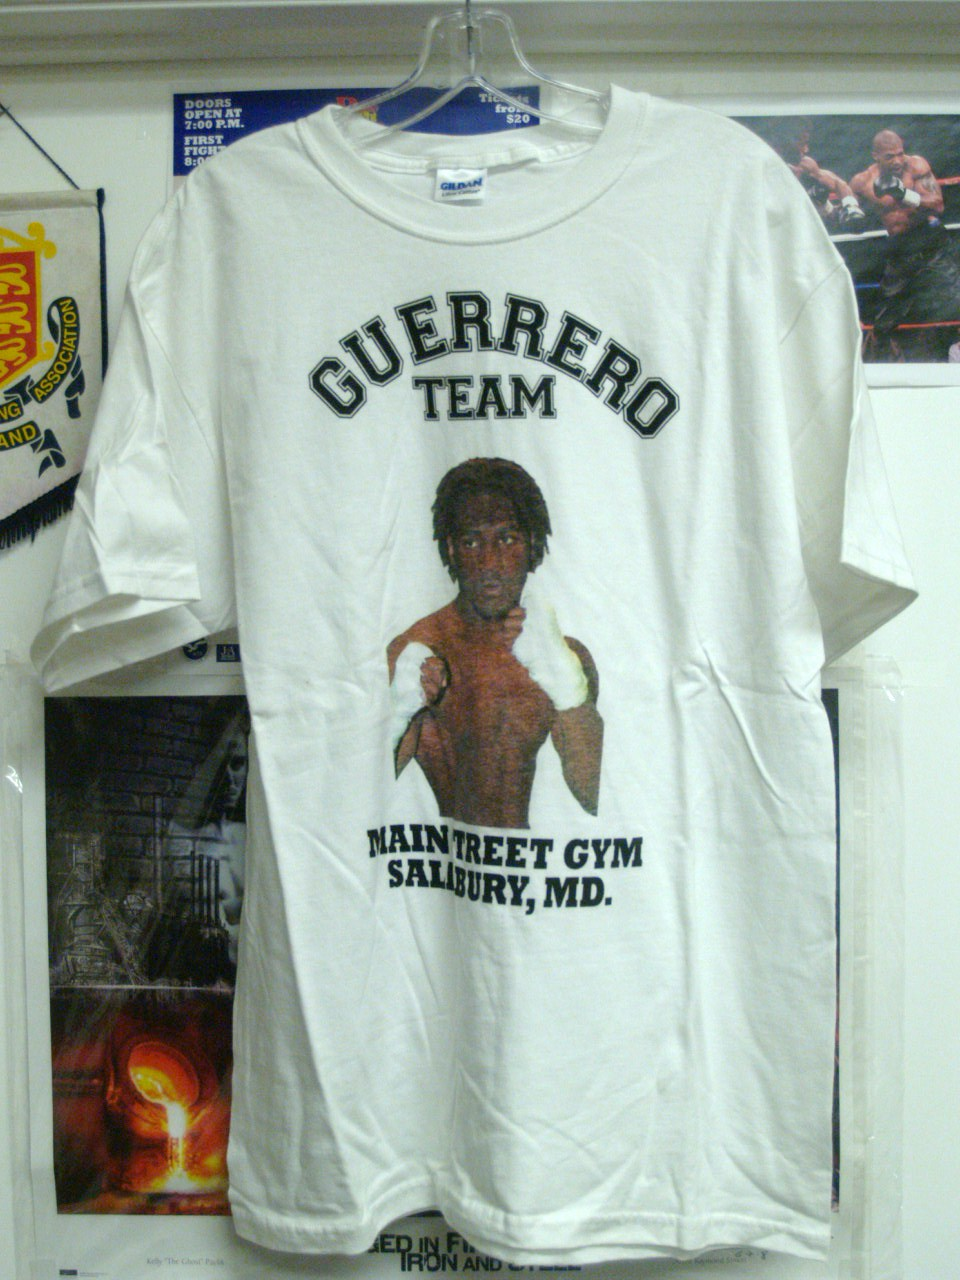 5604126ced7 Today I went up to the Main Street Gym and bought a bunch of Fernando  Guerrero Tee Shirts. Let's show everyone just how many people have  registered to ...